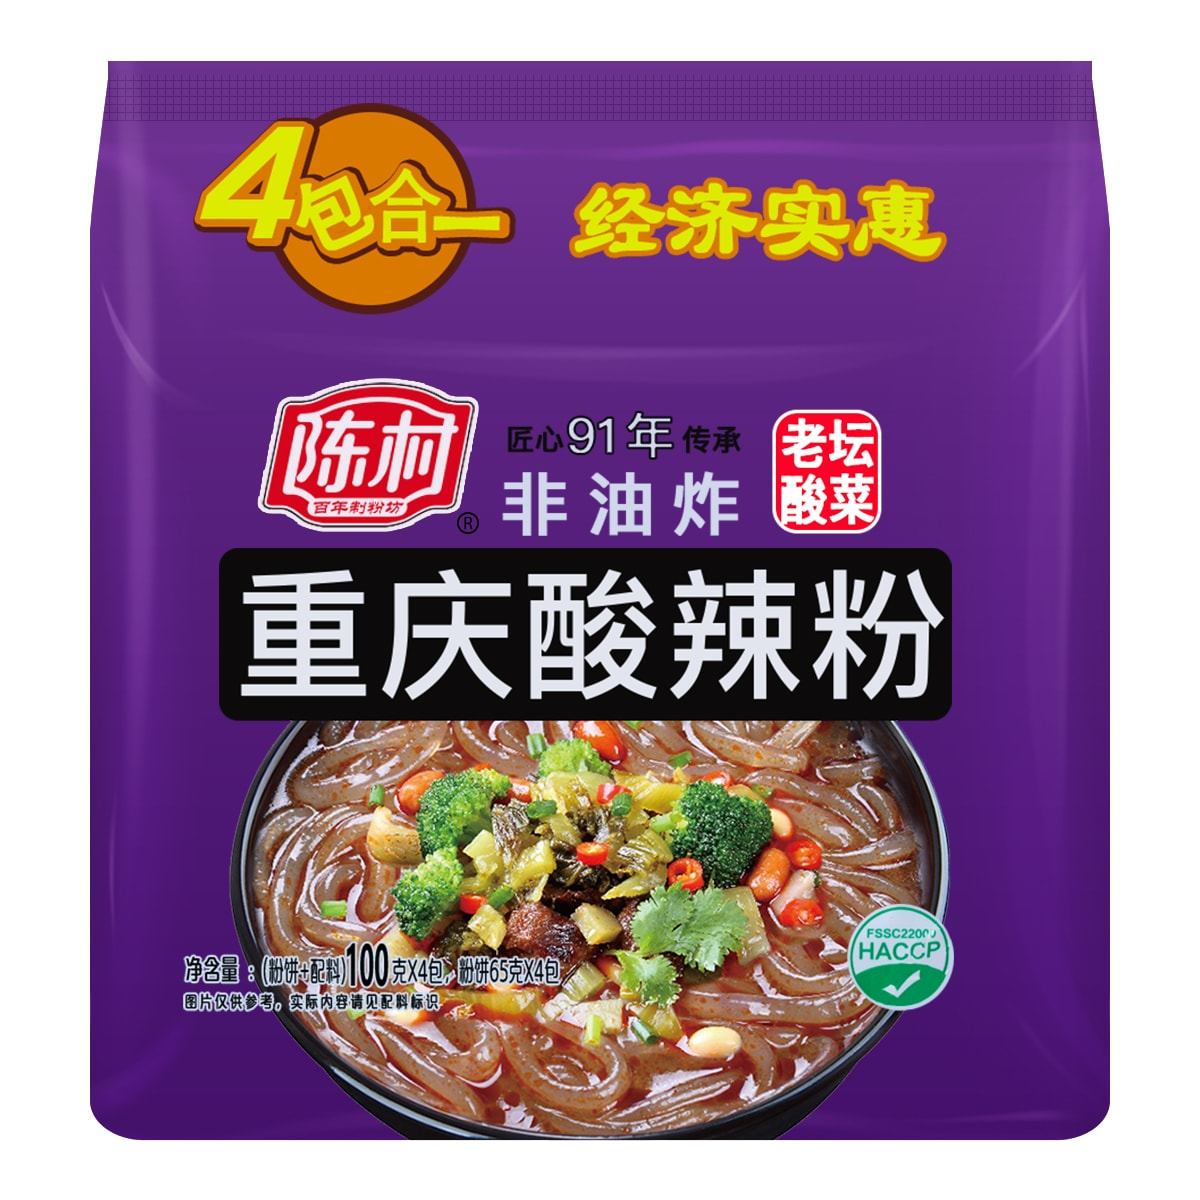 CHENCUNFEN Pickle Flavor Instant Hot and Sour Rice Noodle 4Packs 400g